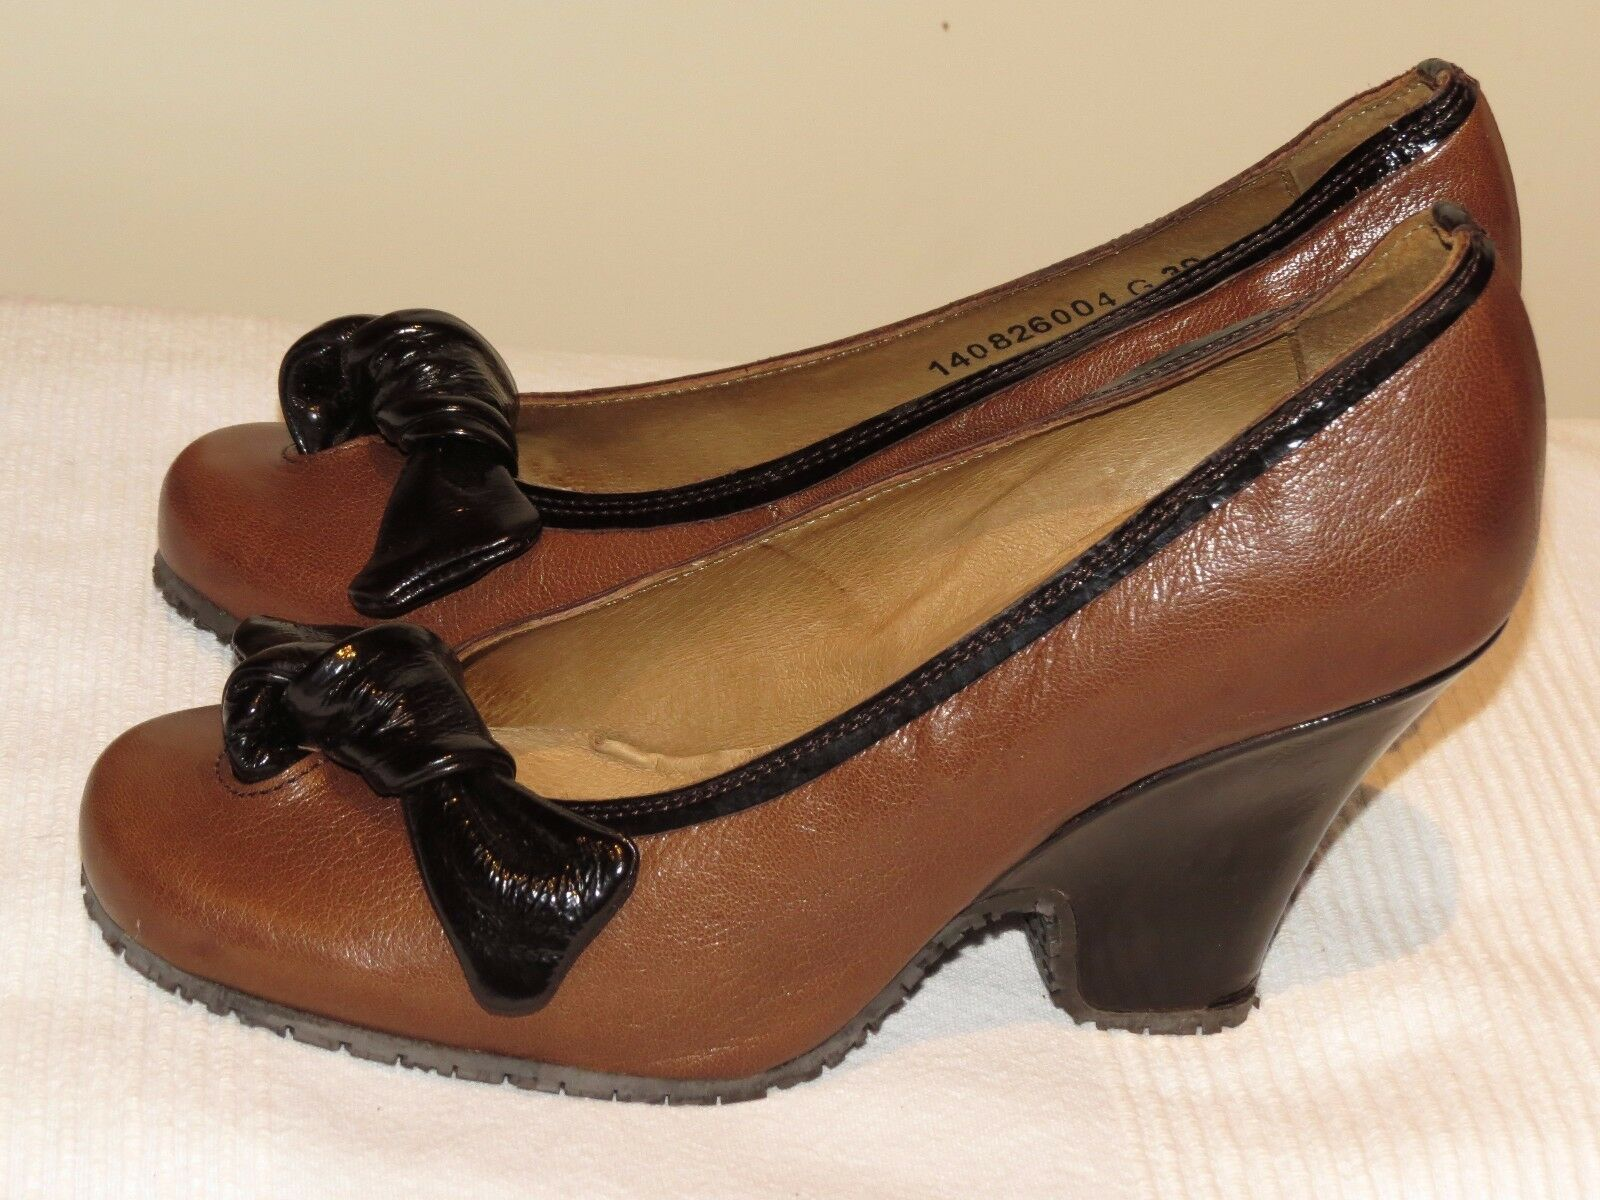 Fly London Fly Girl Grand En cuir marron court chaussures heels uk 6 eur 39